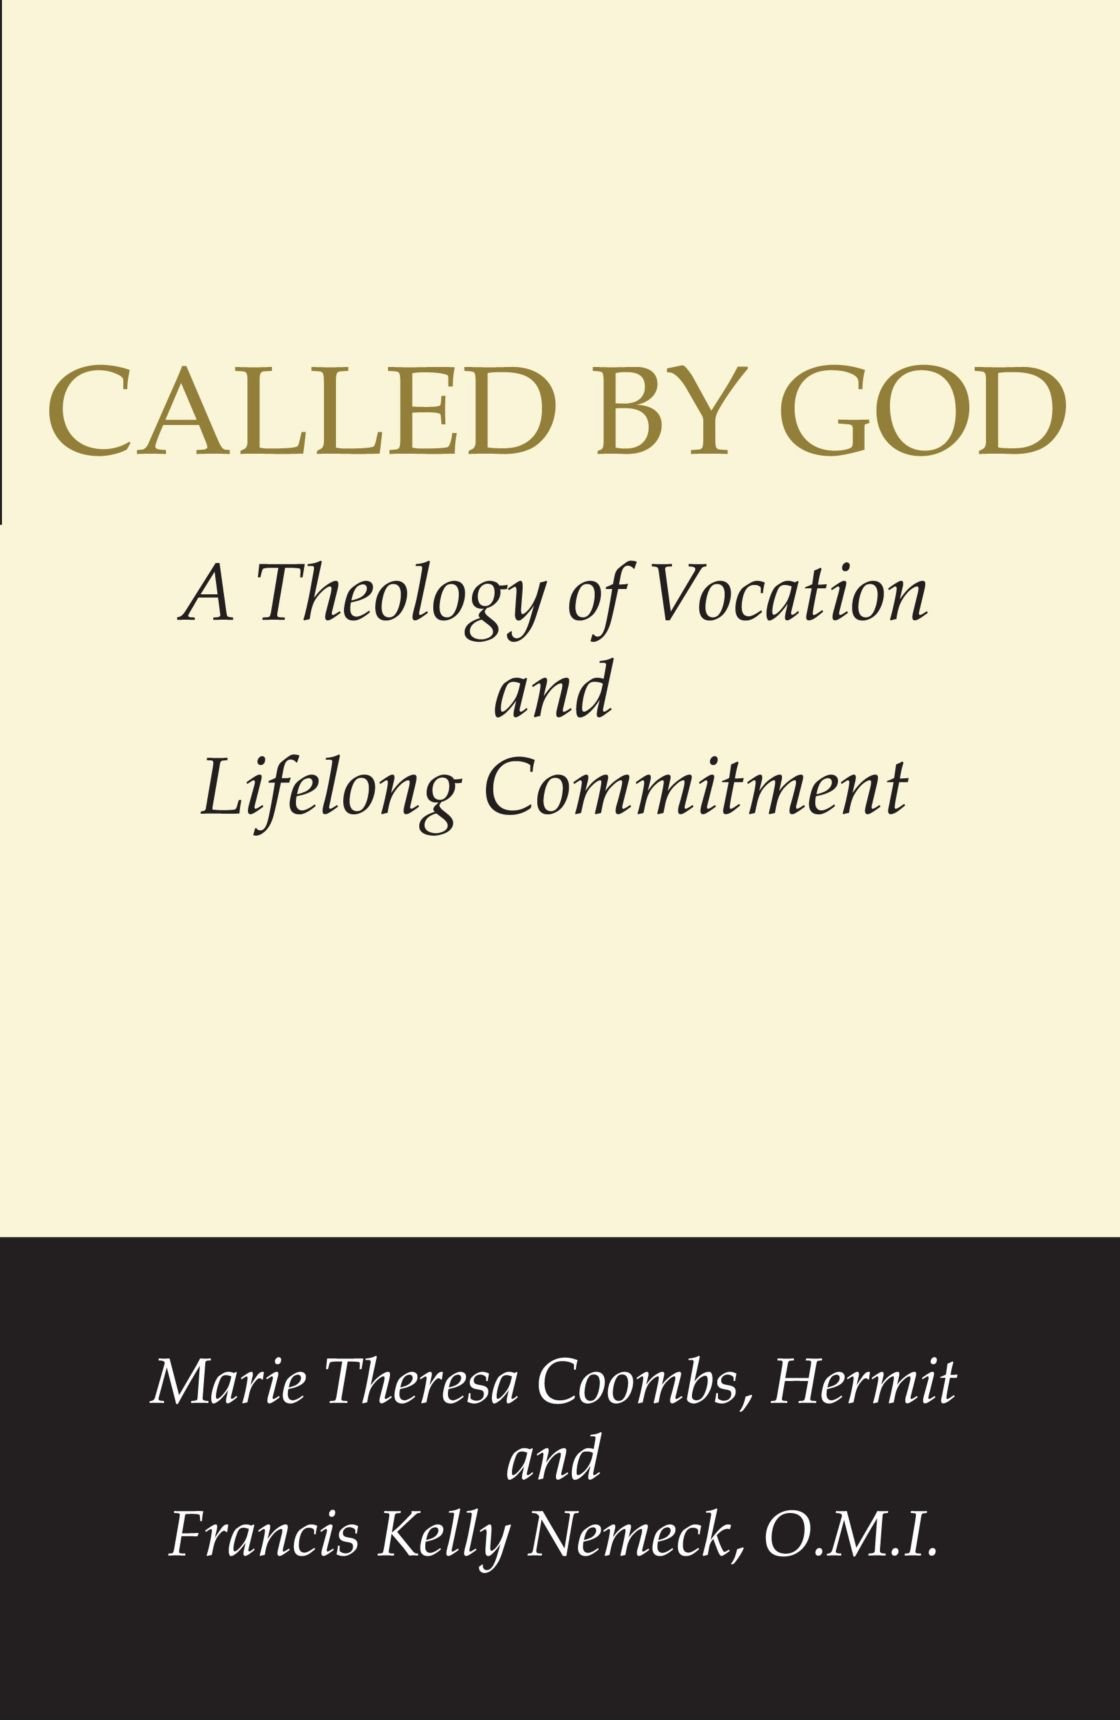 Called By God: A Theology of Vocation and Lifelong Commitment pdf